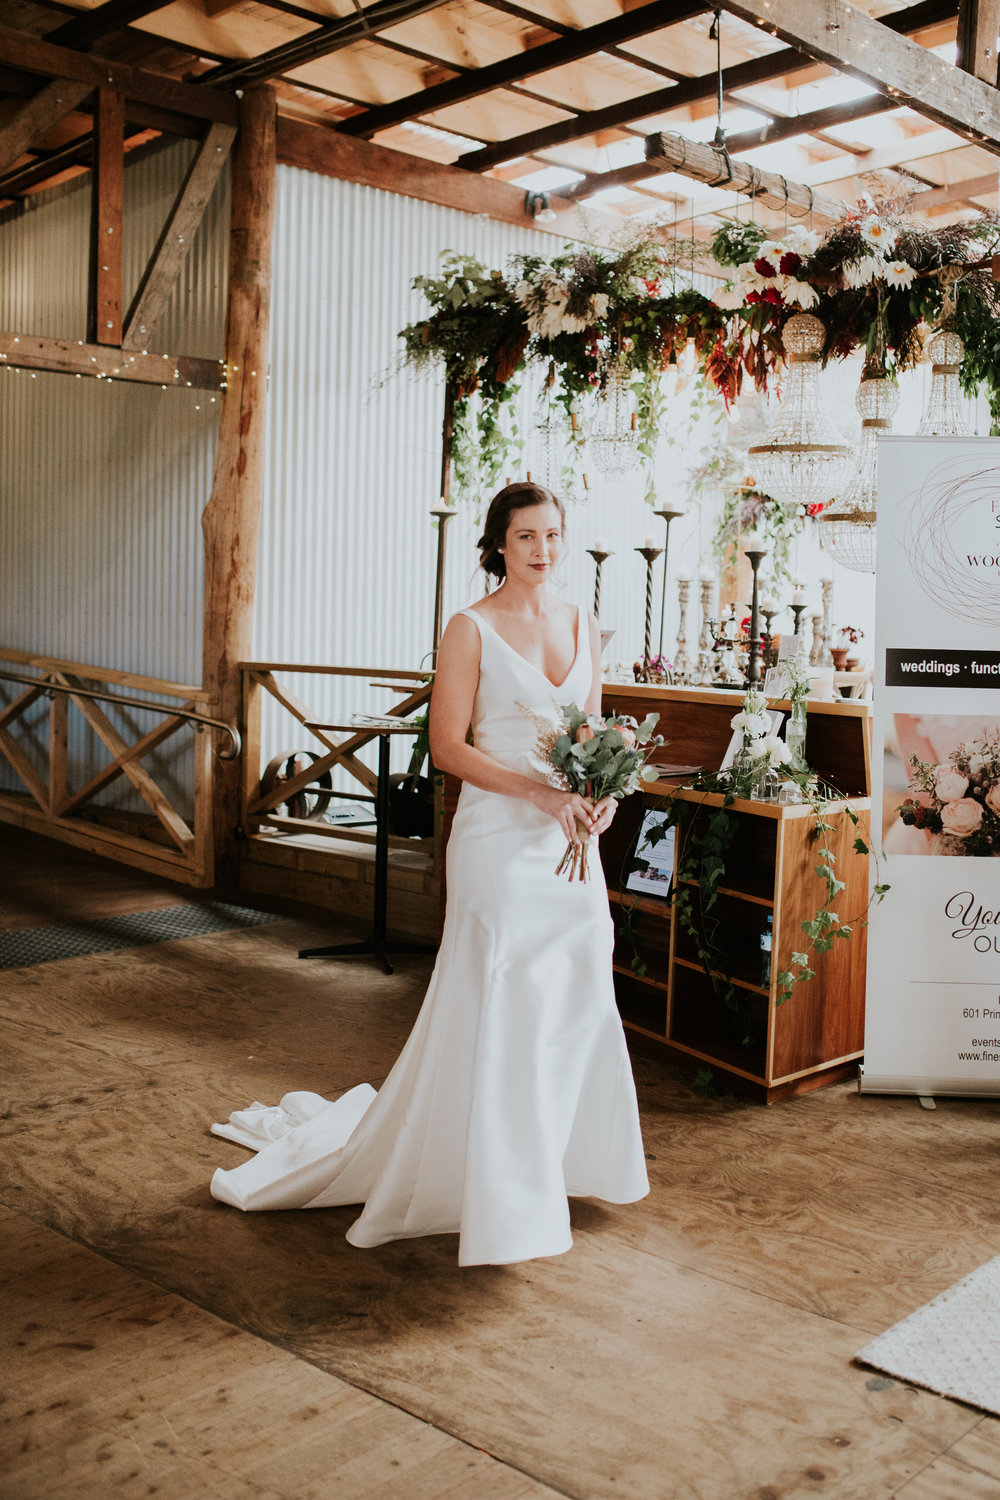 The Woolshed Wedding Expo _ Alana Taylor Photography-low-res-80.jpg